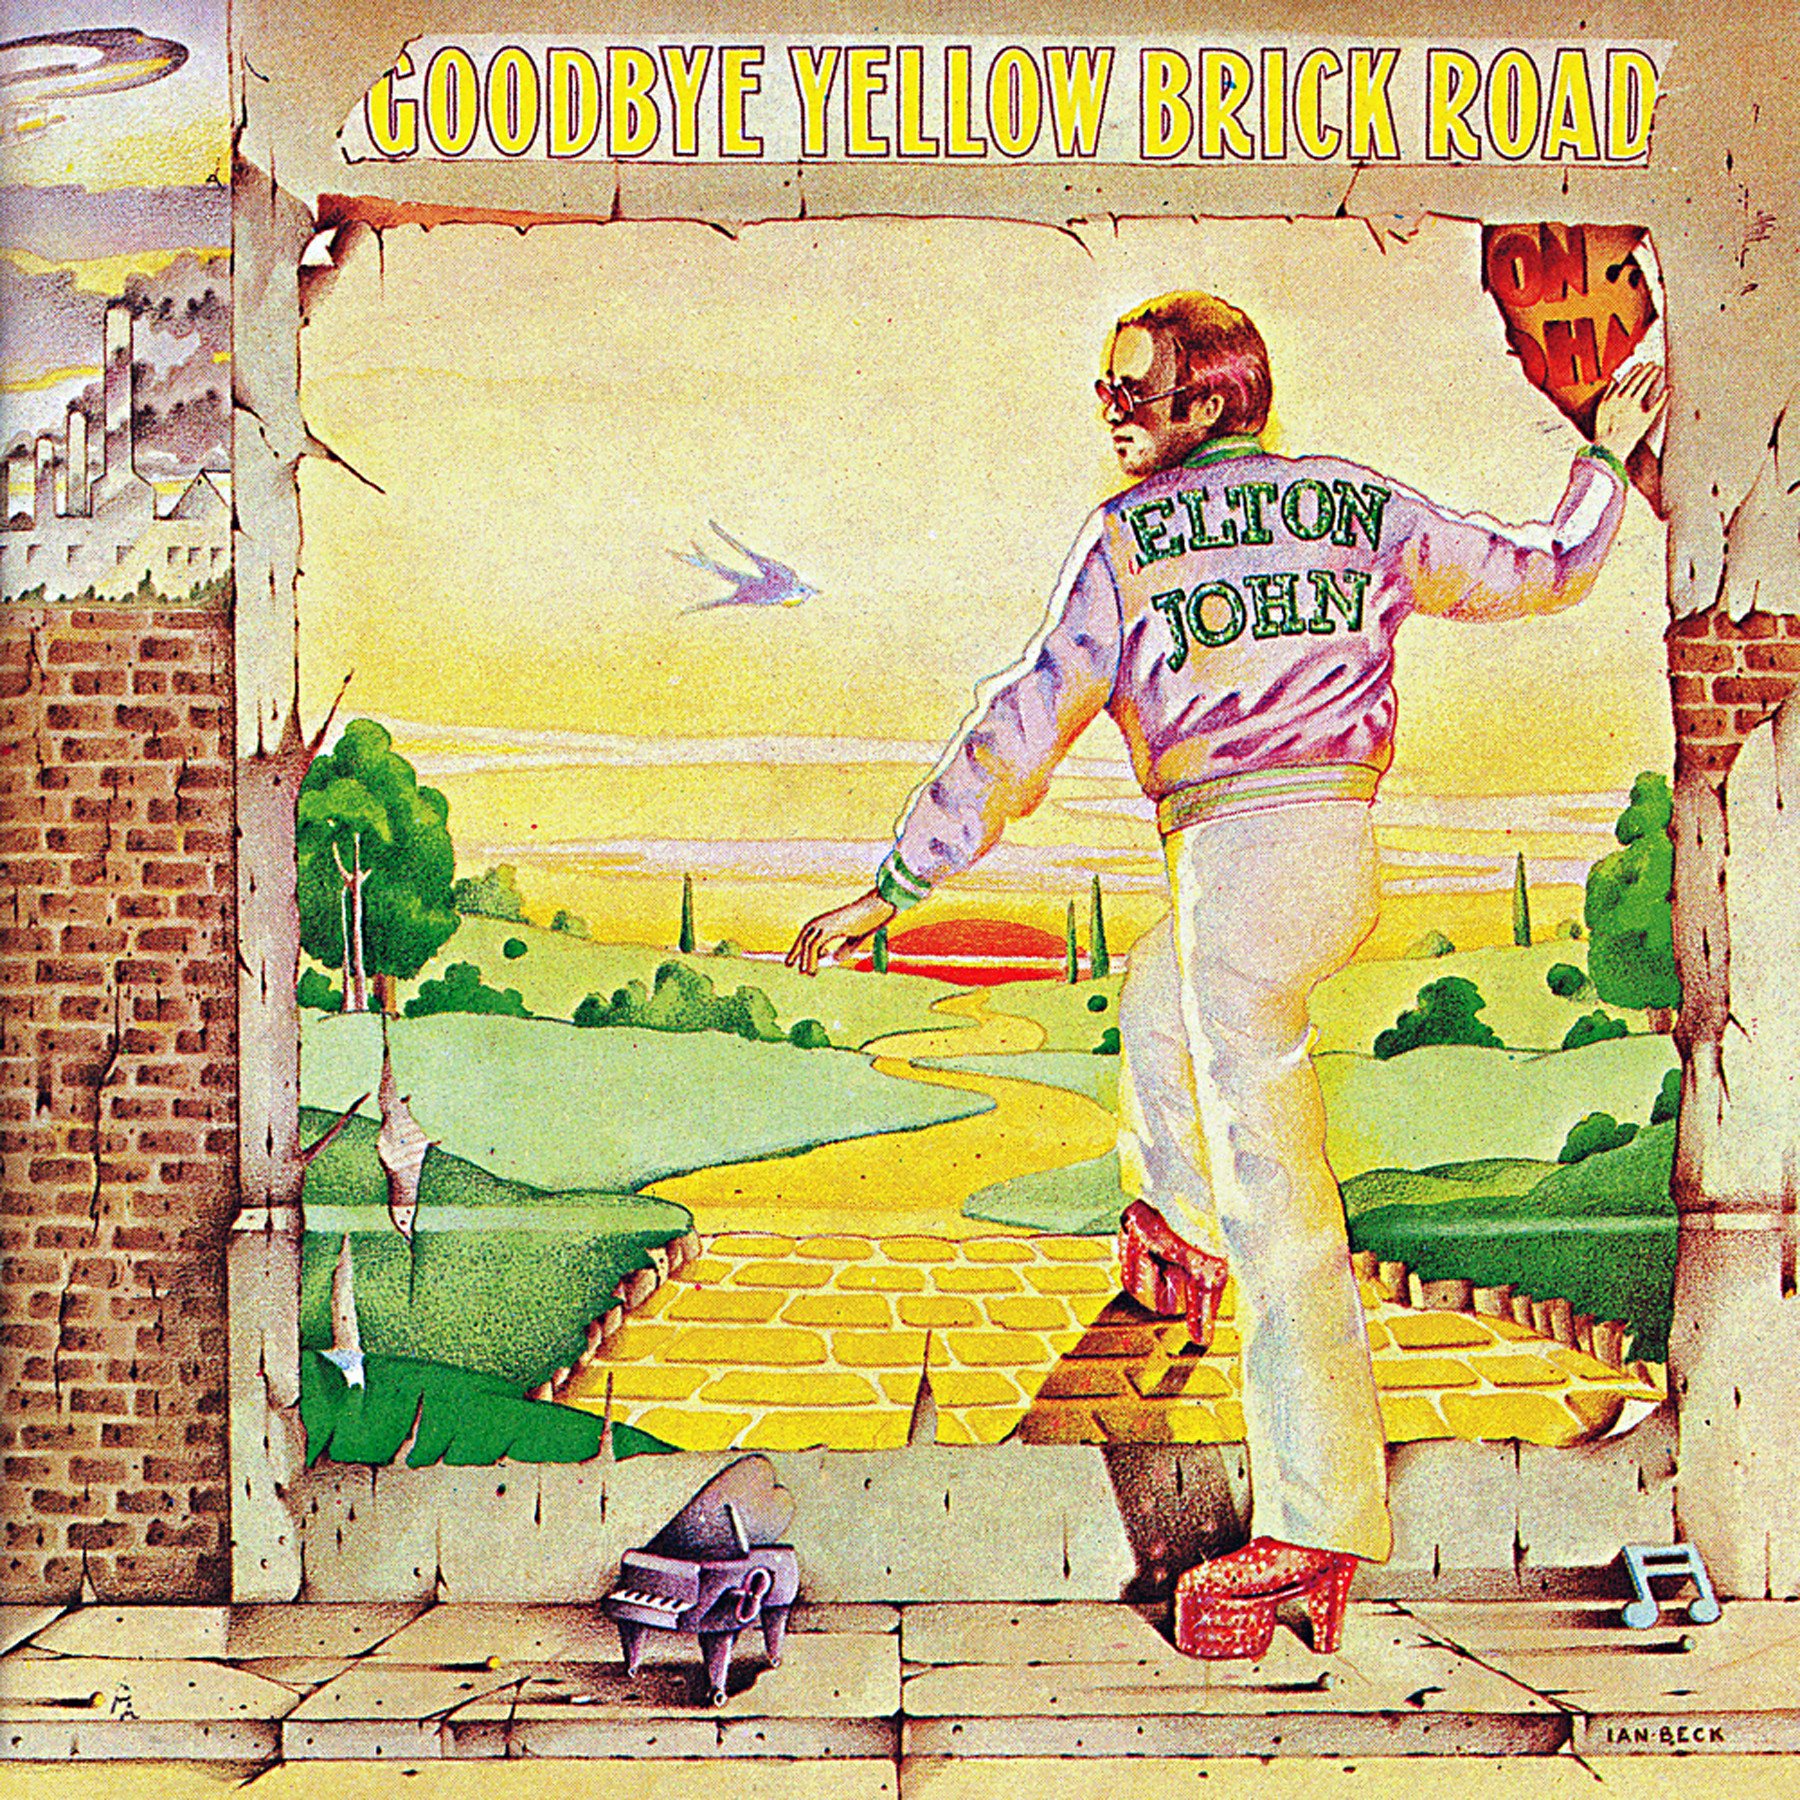 JohnElton_GoodbyeYellowBrickRoad.jpg